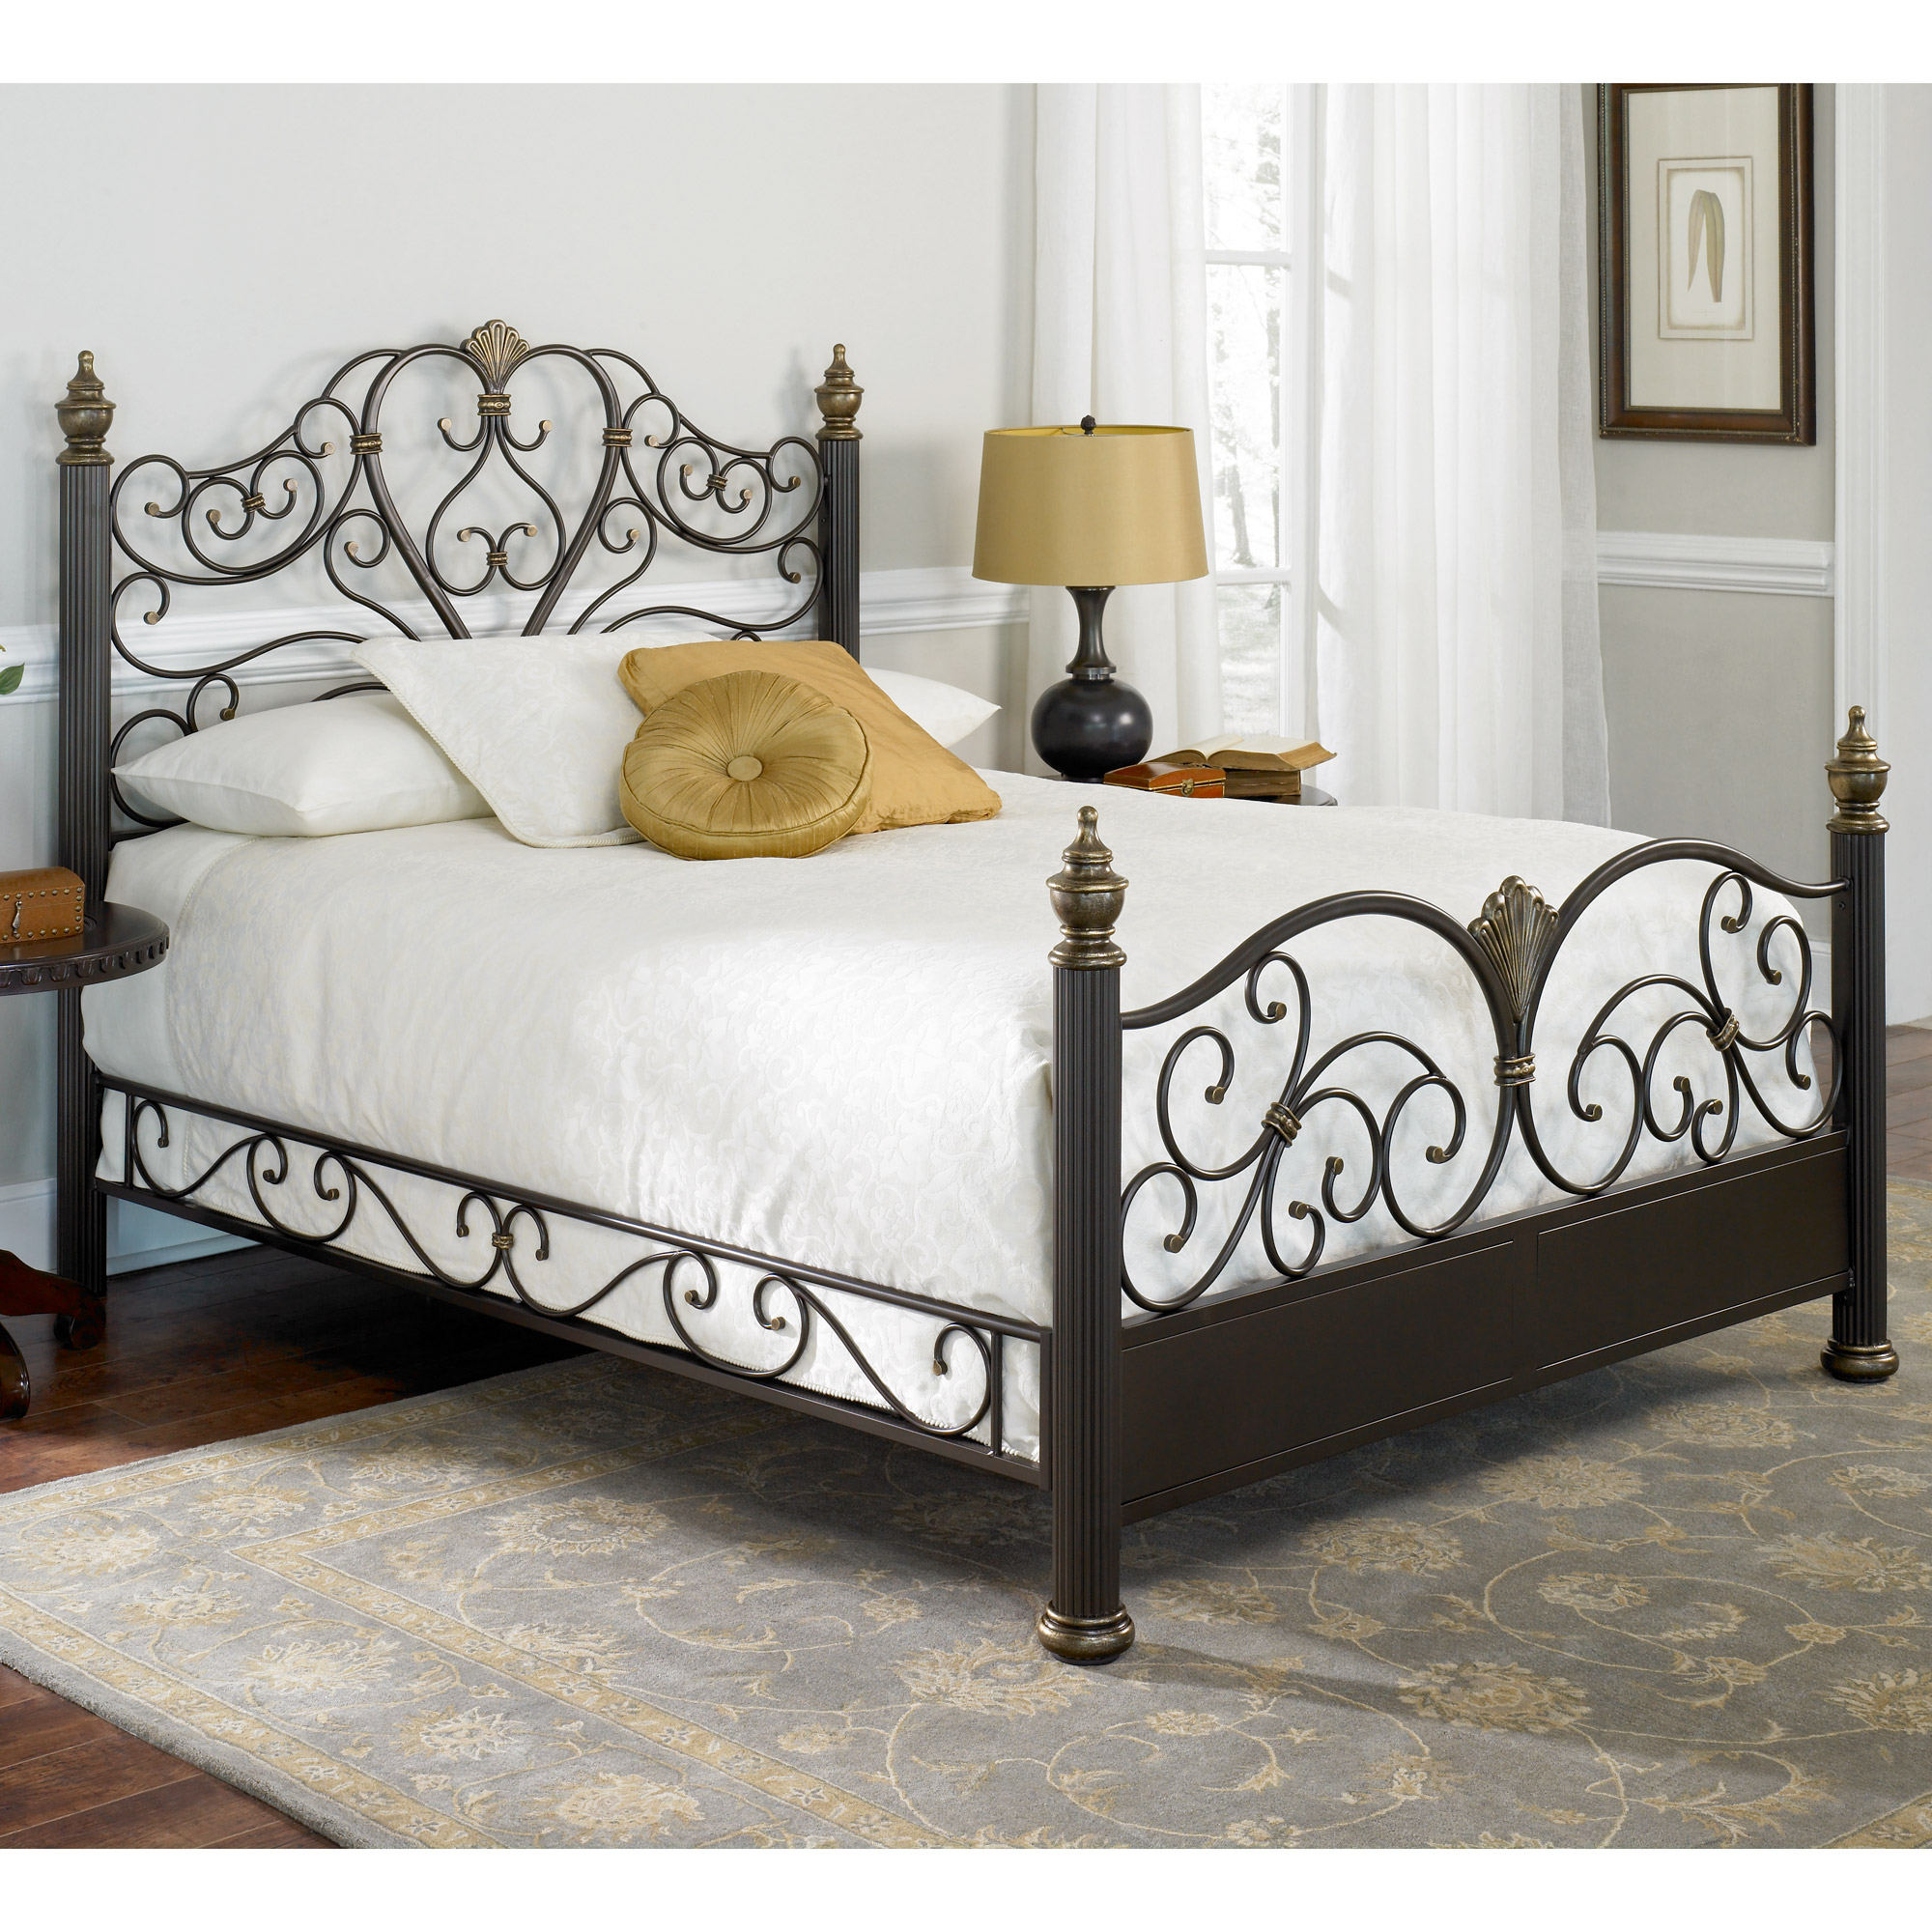 Black Cast Iron King Size Bed